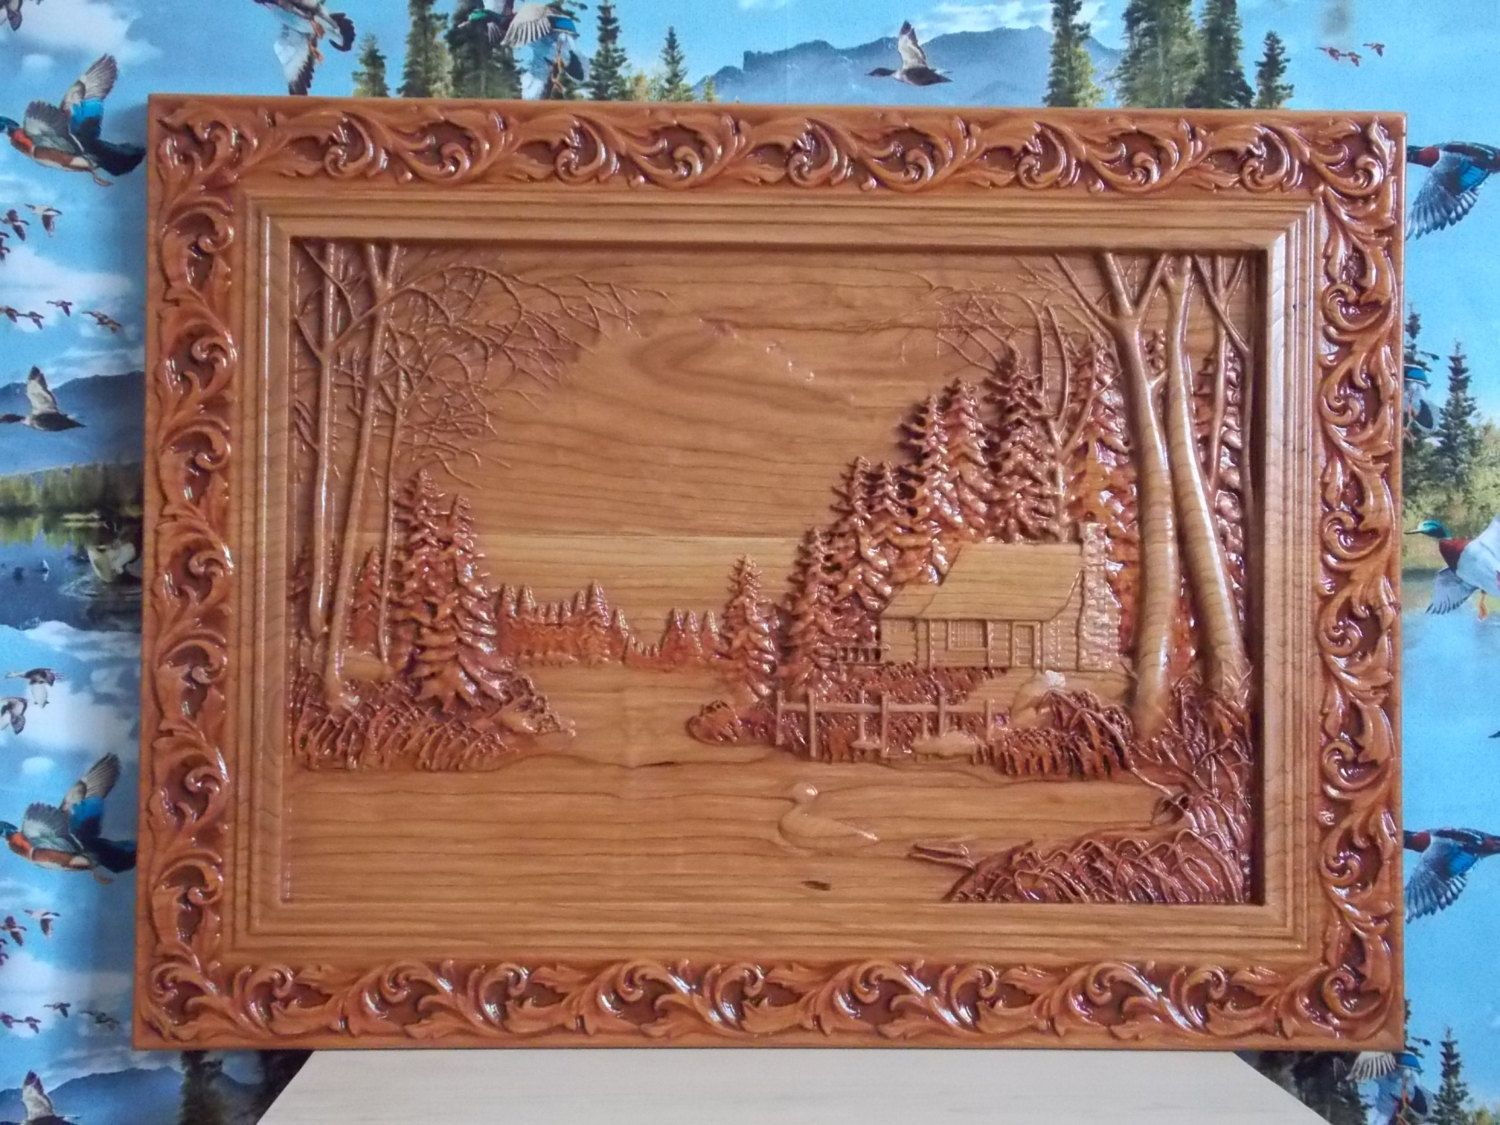 Cabin Wall Decor Log Cabin Wood Carving Duck Hunting Wall